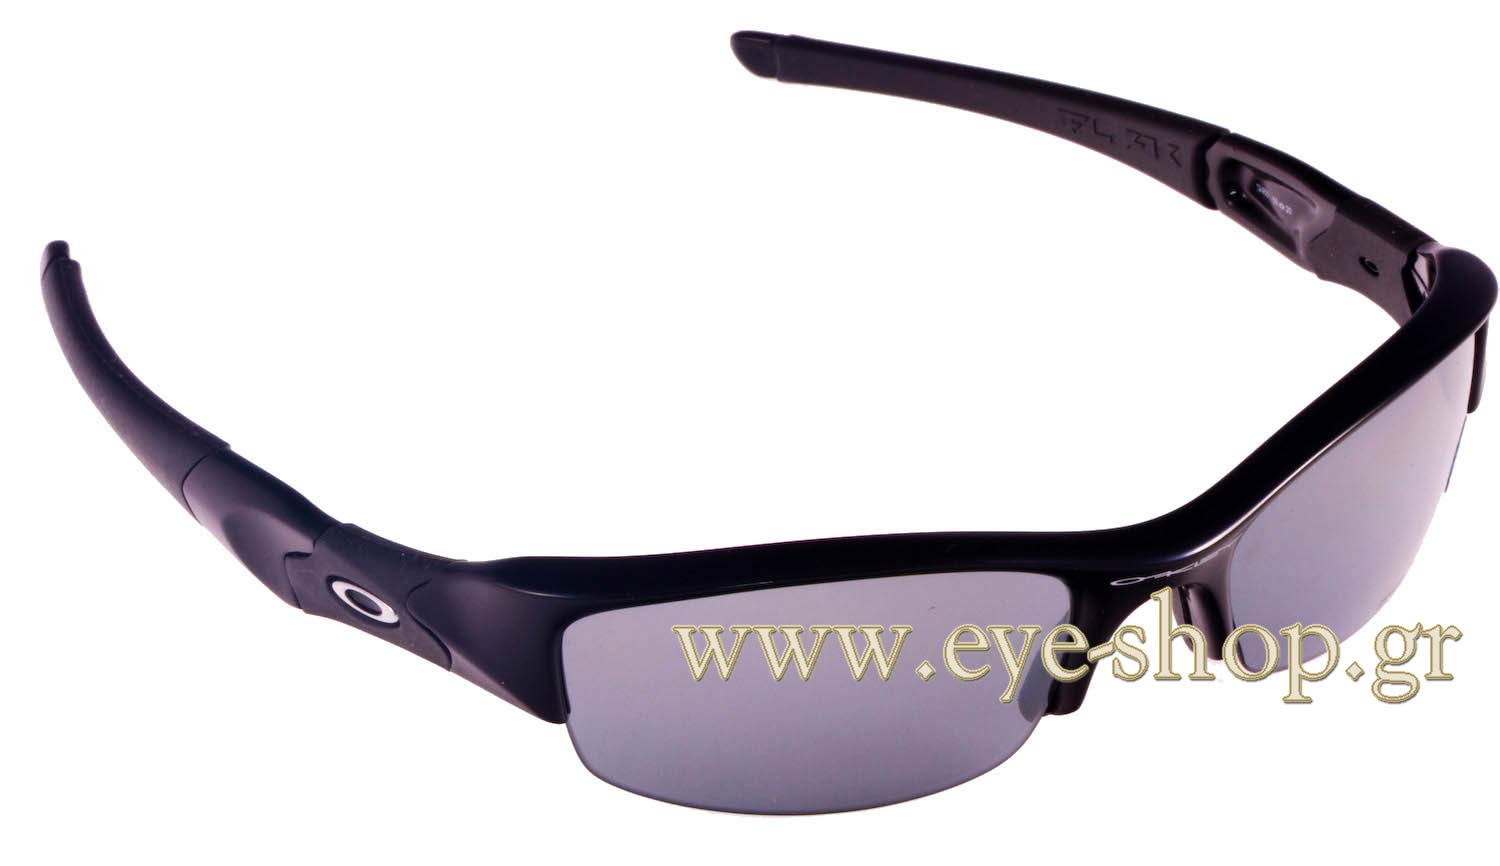 c1ae94db98 Oakley Flak Jacket 9008 12-900 black iridium polarized